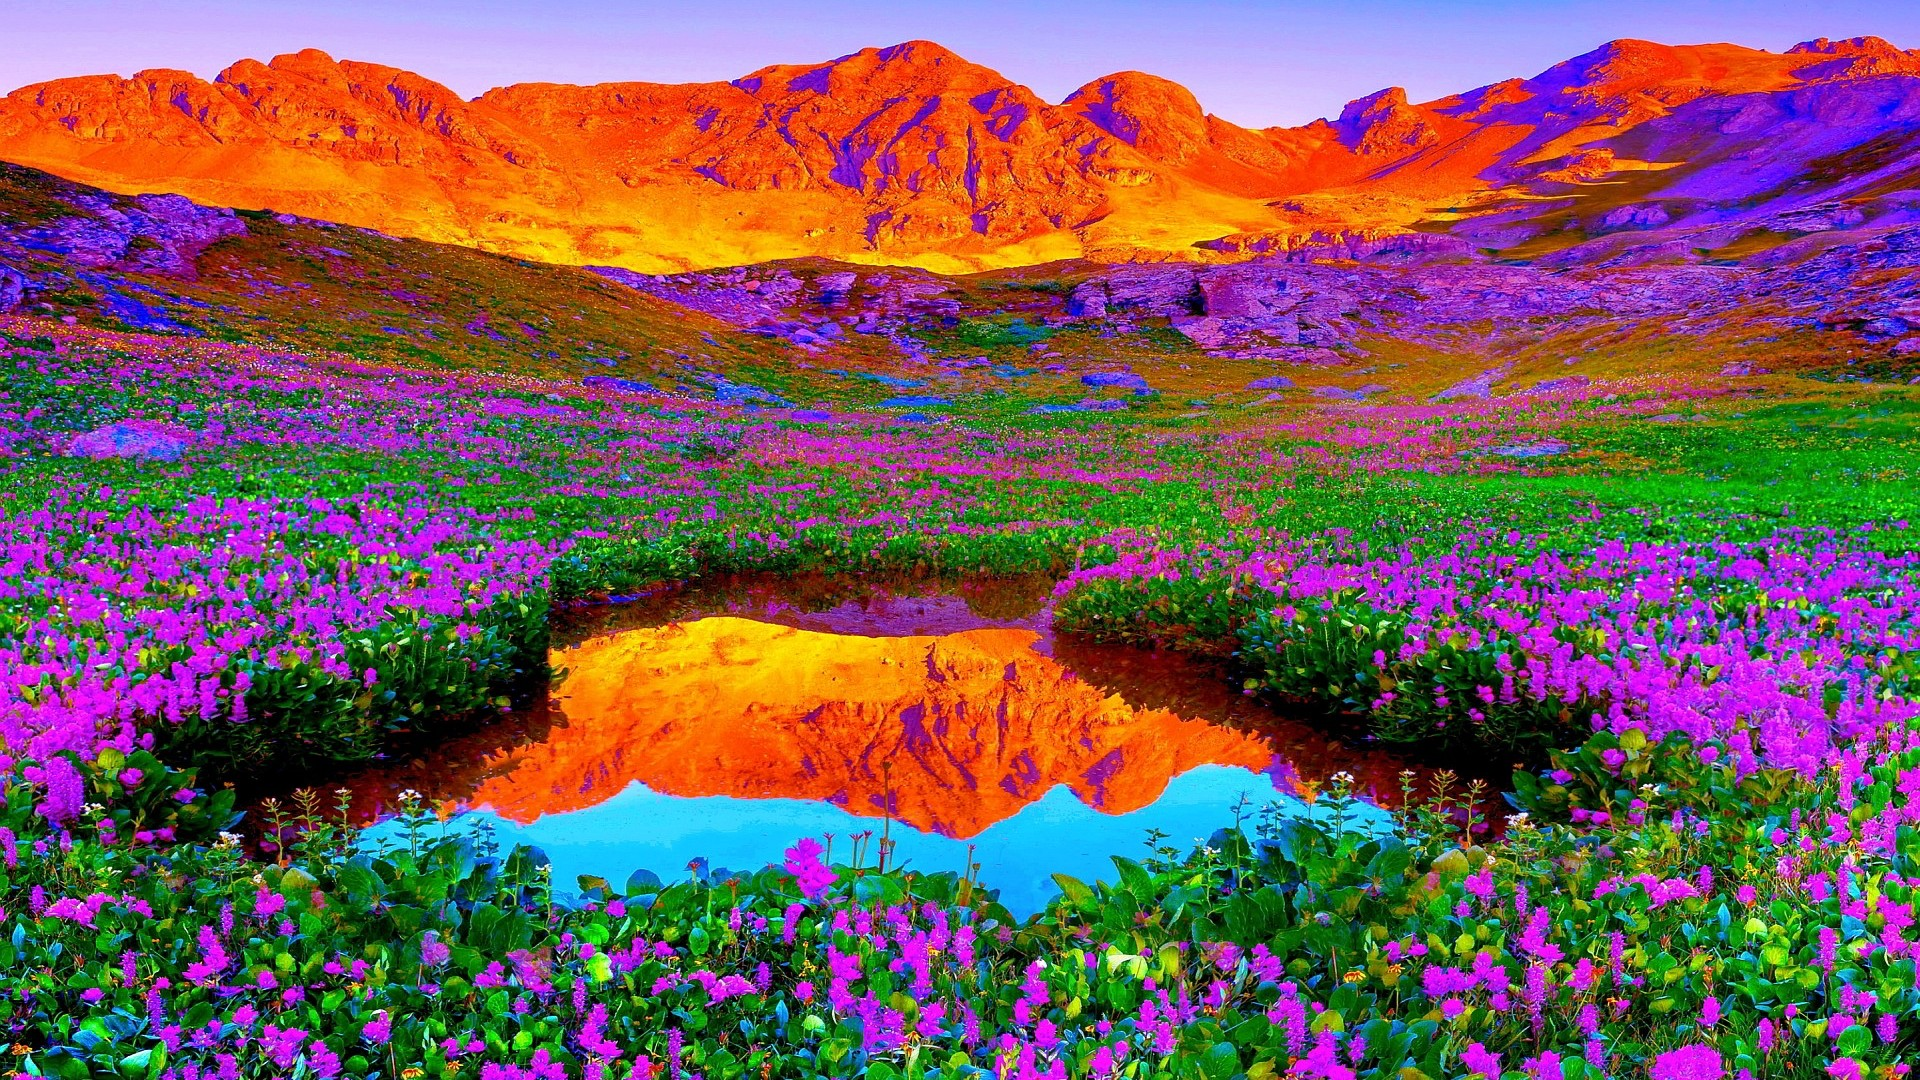 HD 1080p Nature Wallpapers Download 1920x1080